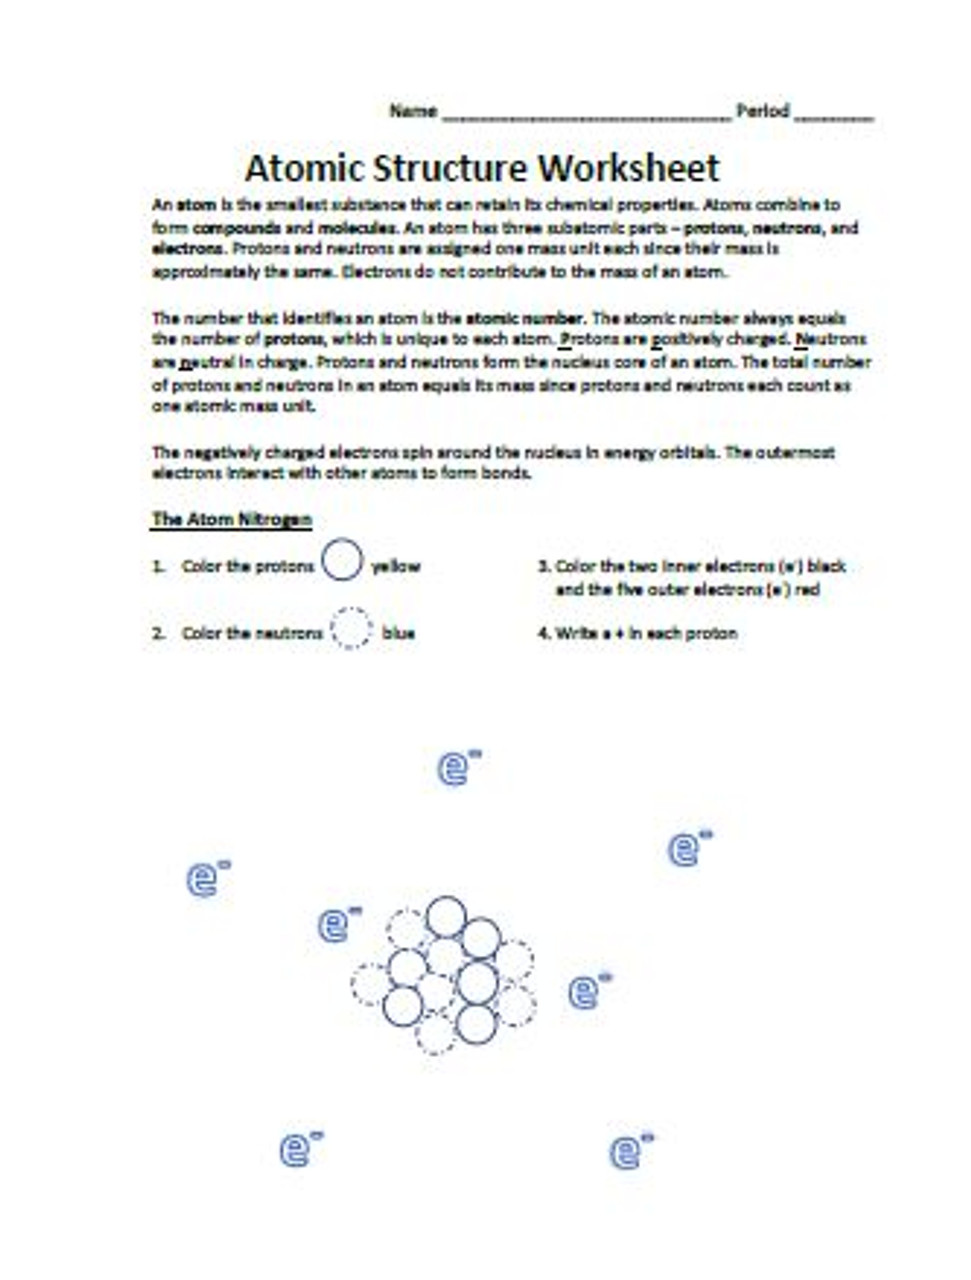 Atomic Structure Worksheet - Amped Up Learning [ 1280 x 971 Pixel ]